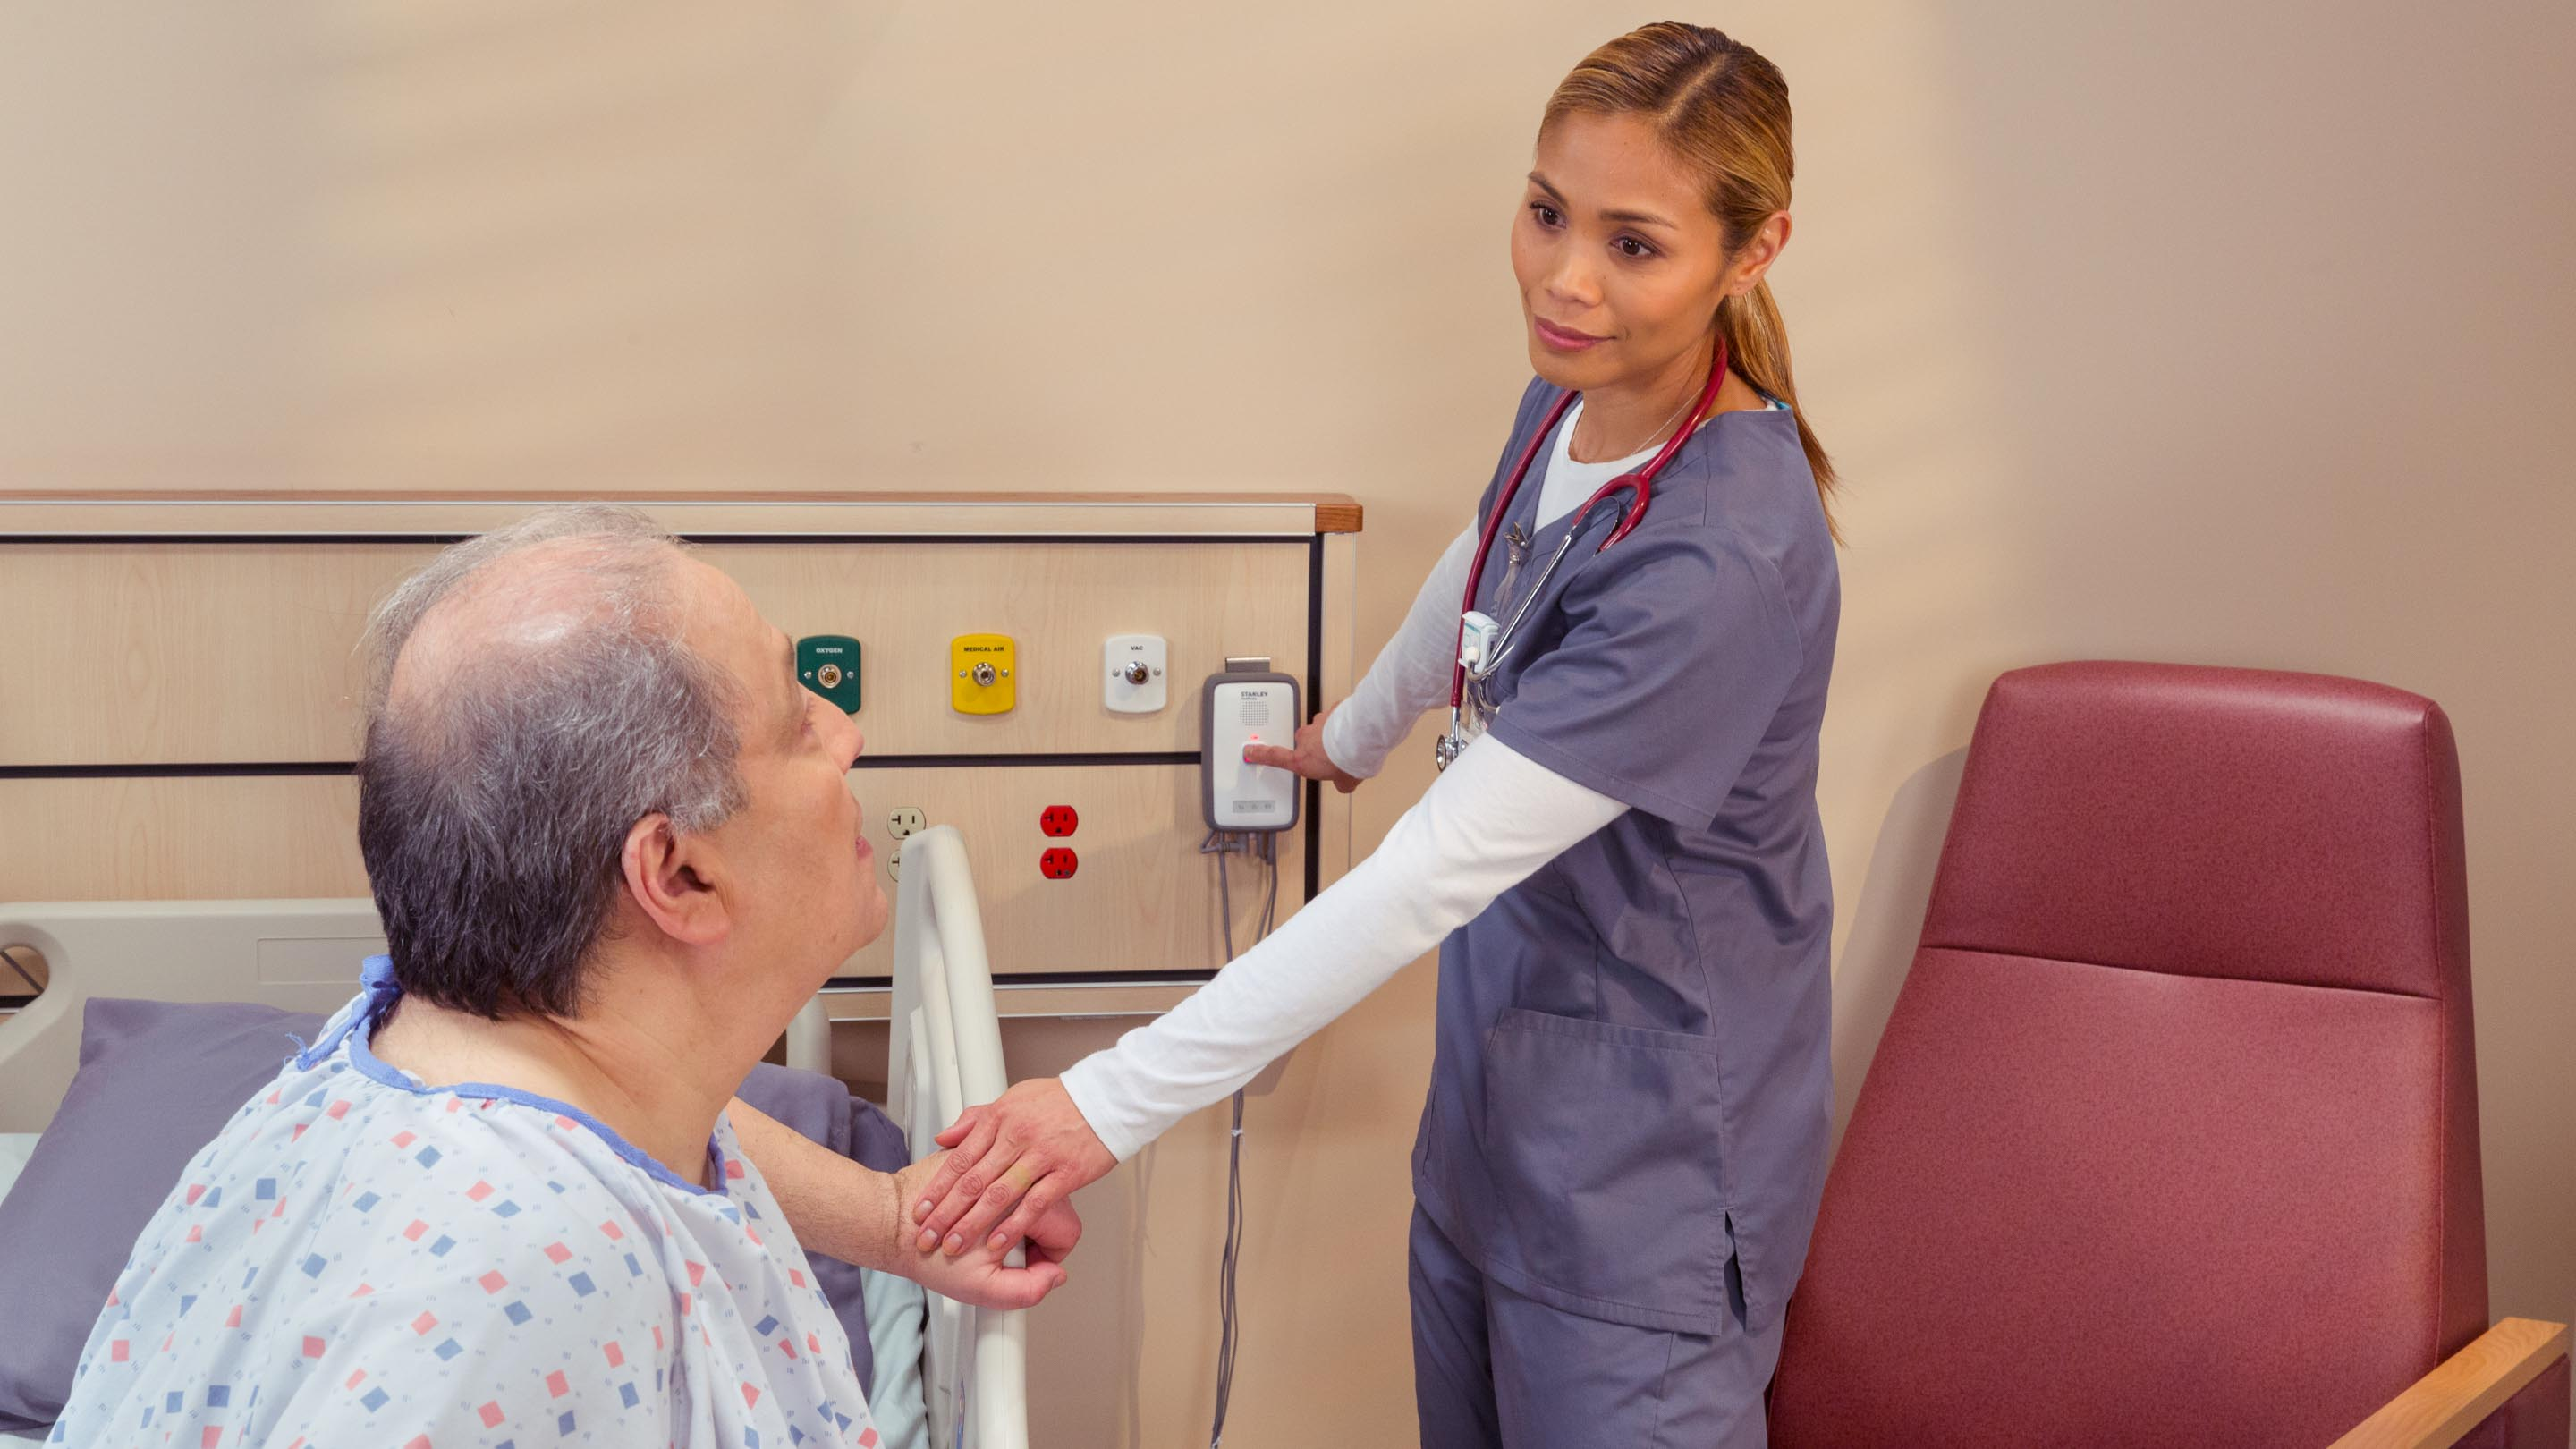 Nurse helps patient with M200 fall management monitor